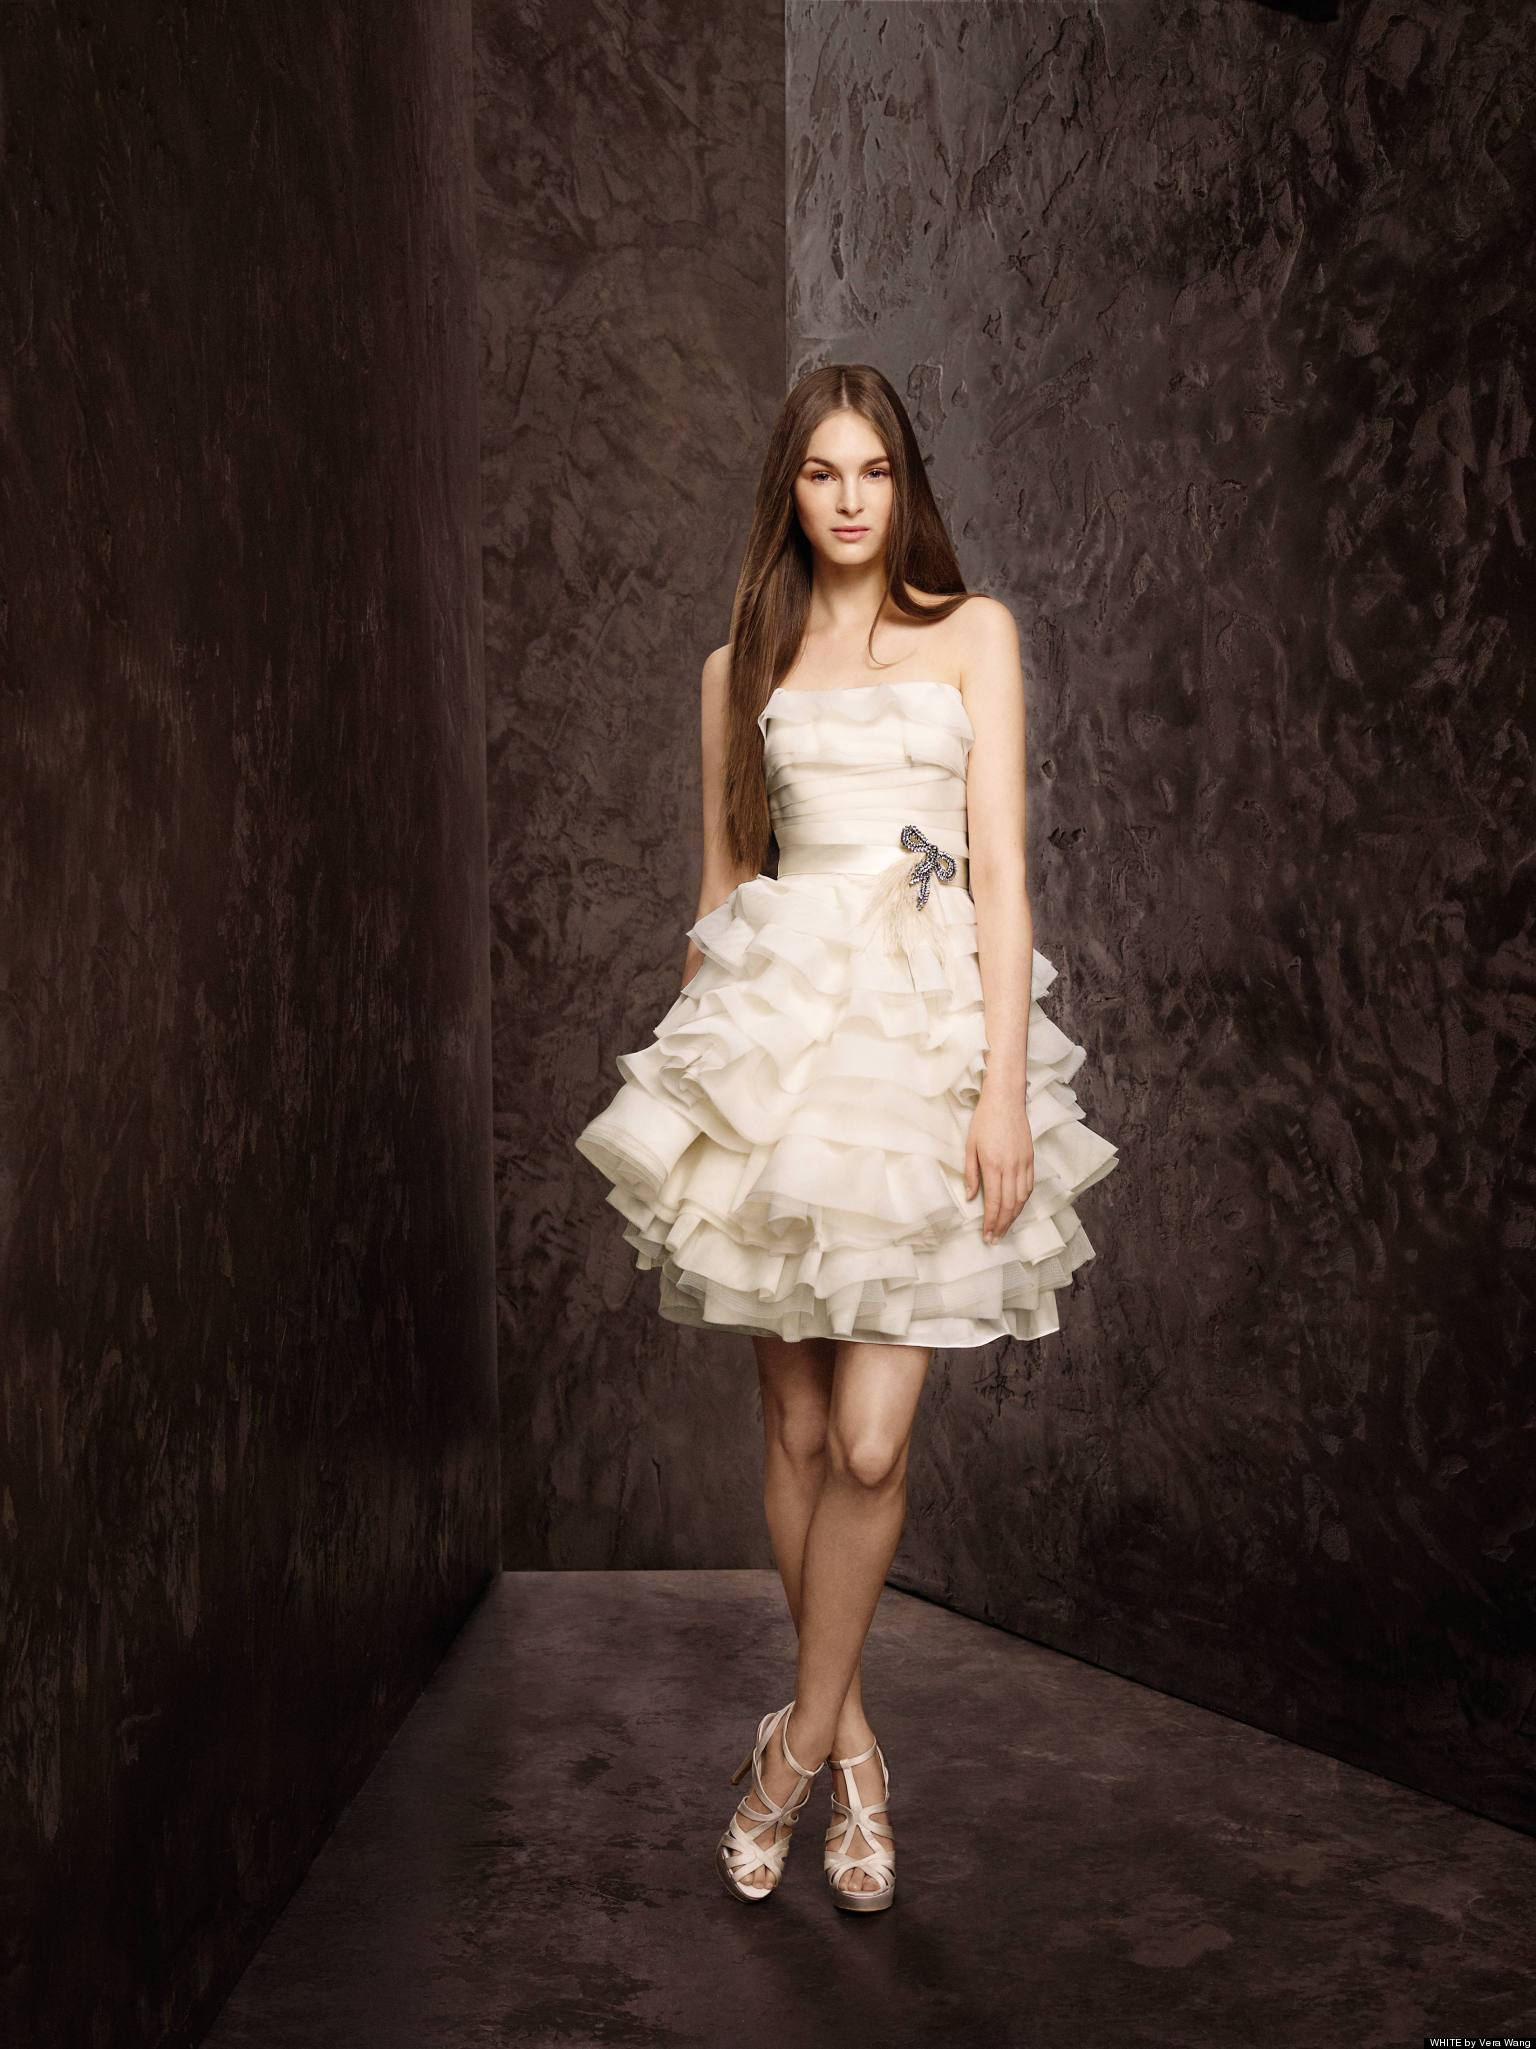 Wedding Dress For Short Brides : Short wedding dresses for spring brides photos huffpost